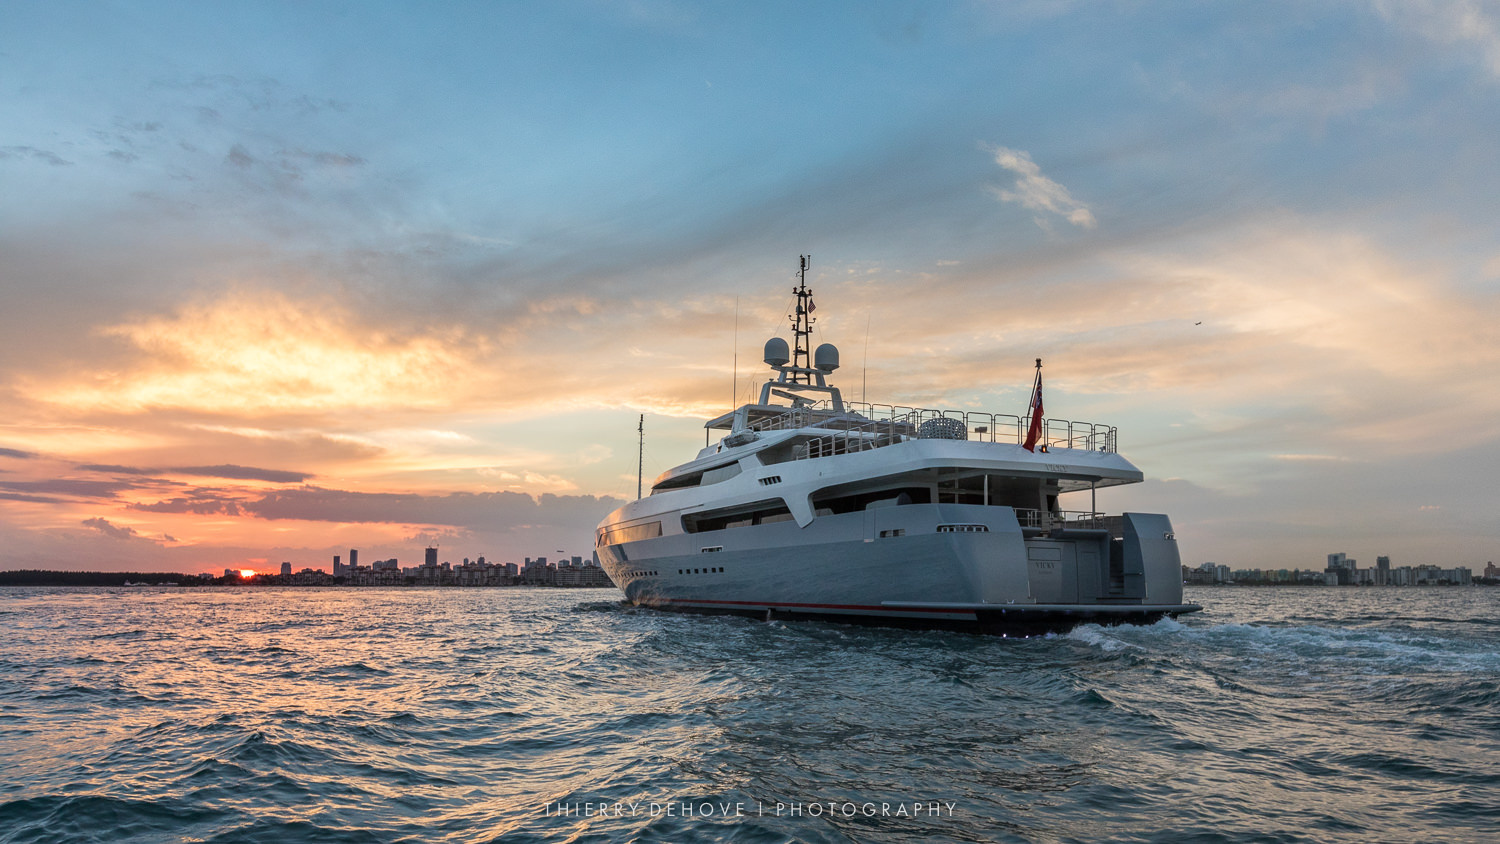 Sunset on Mega Yacht in Miami by Thierry Dehove